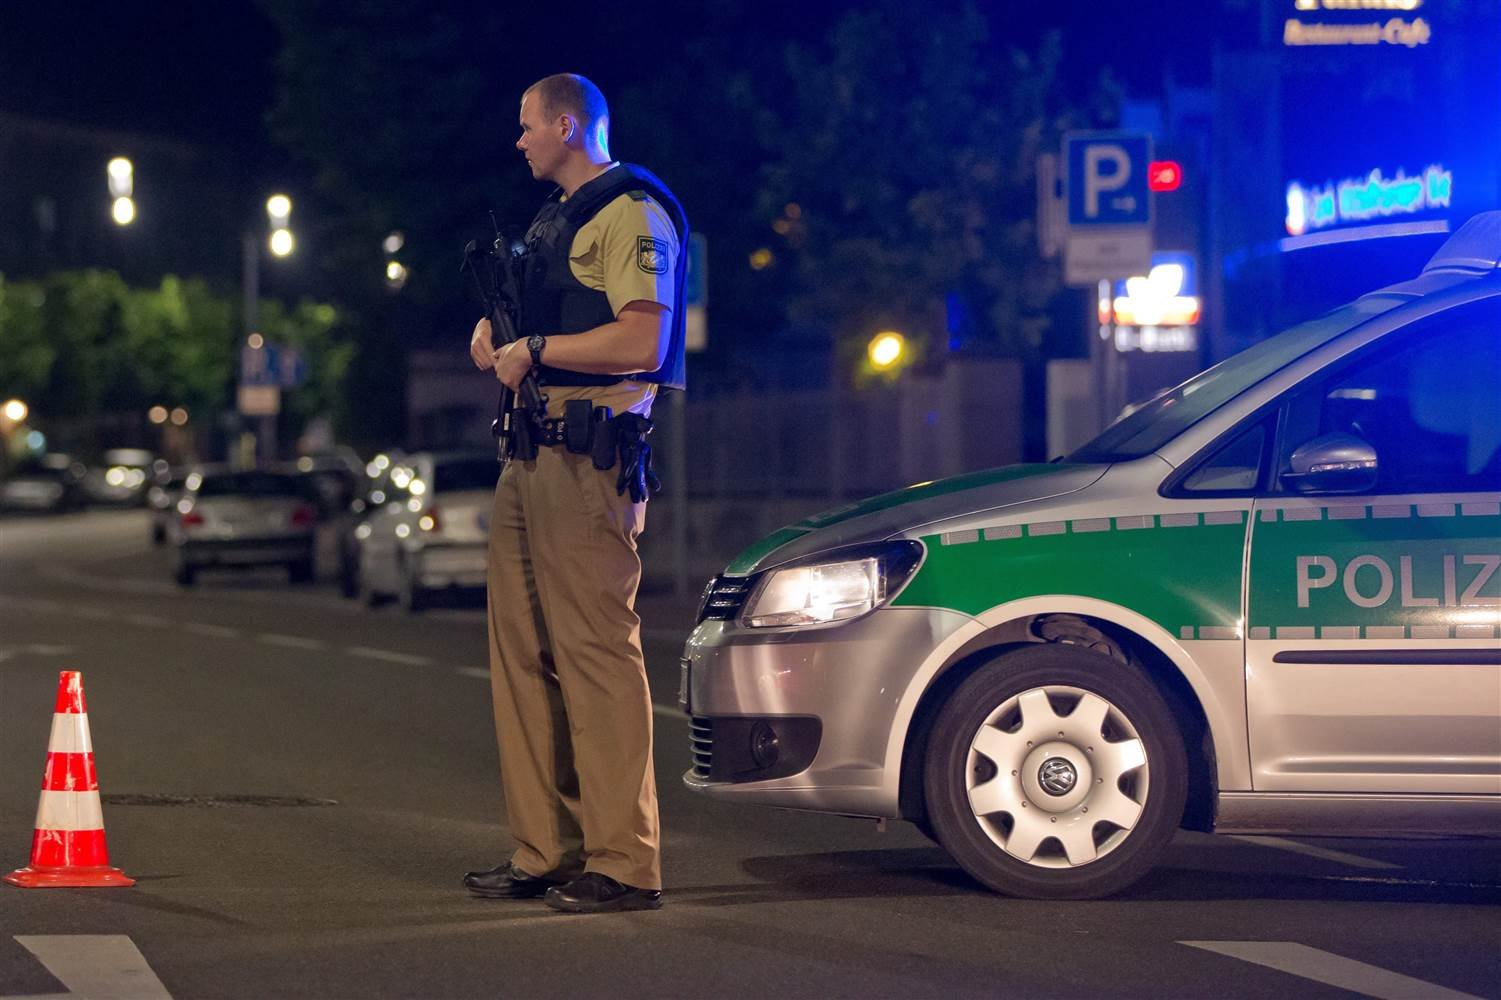 Ansbach, Germany explosion 'may not be accident'